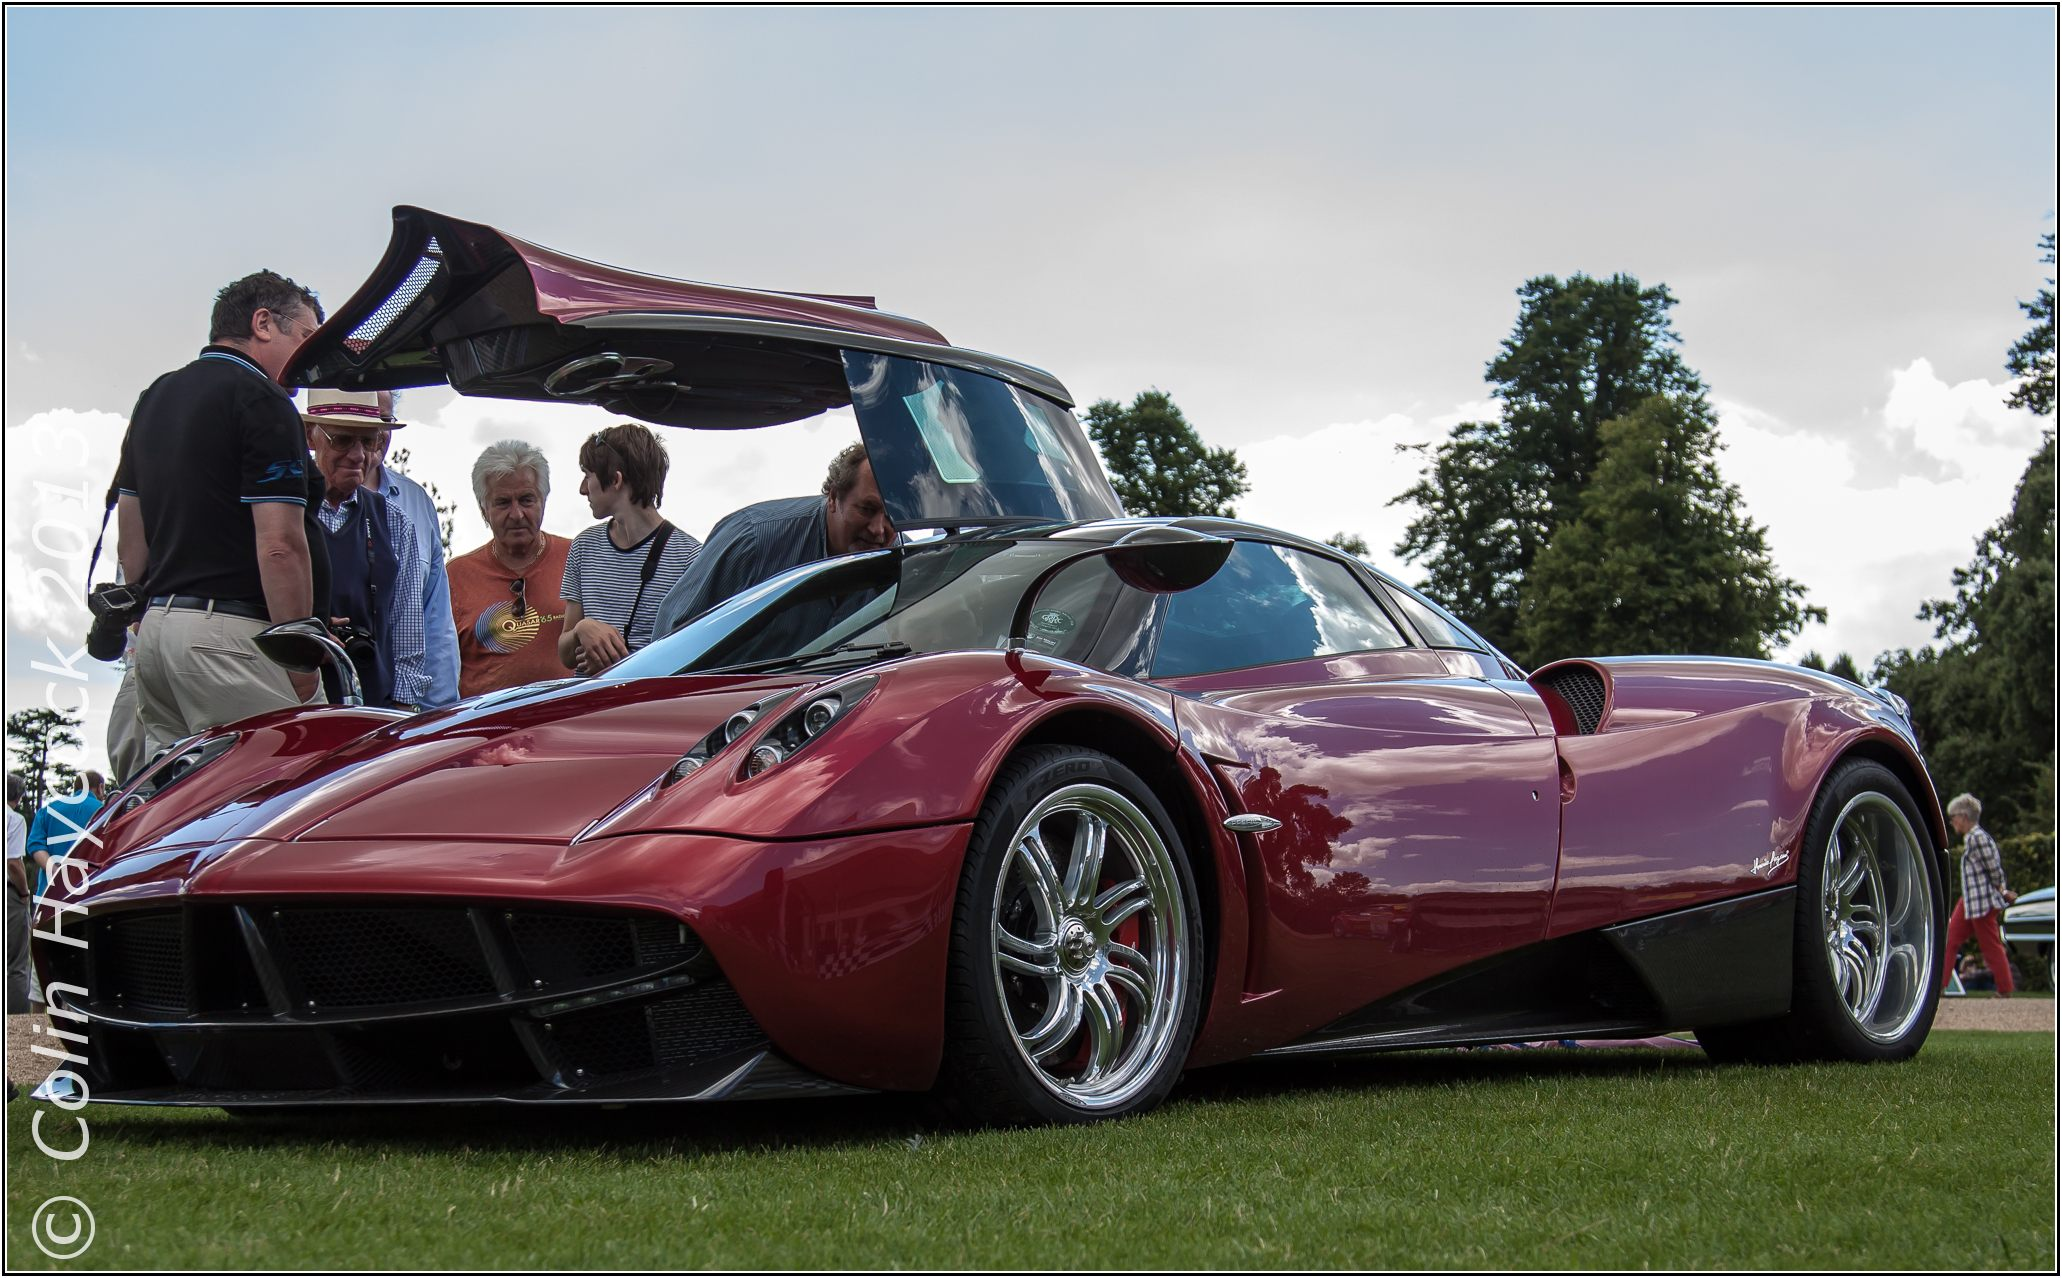 Pagani Huayra - Red/CF, Black interior #76007 - Page 3 ...